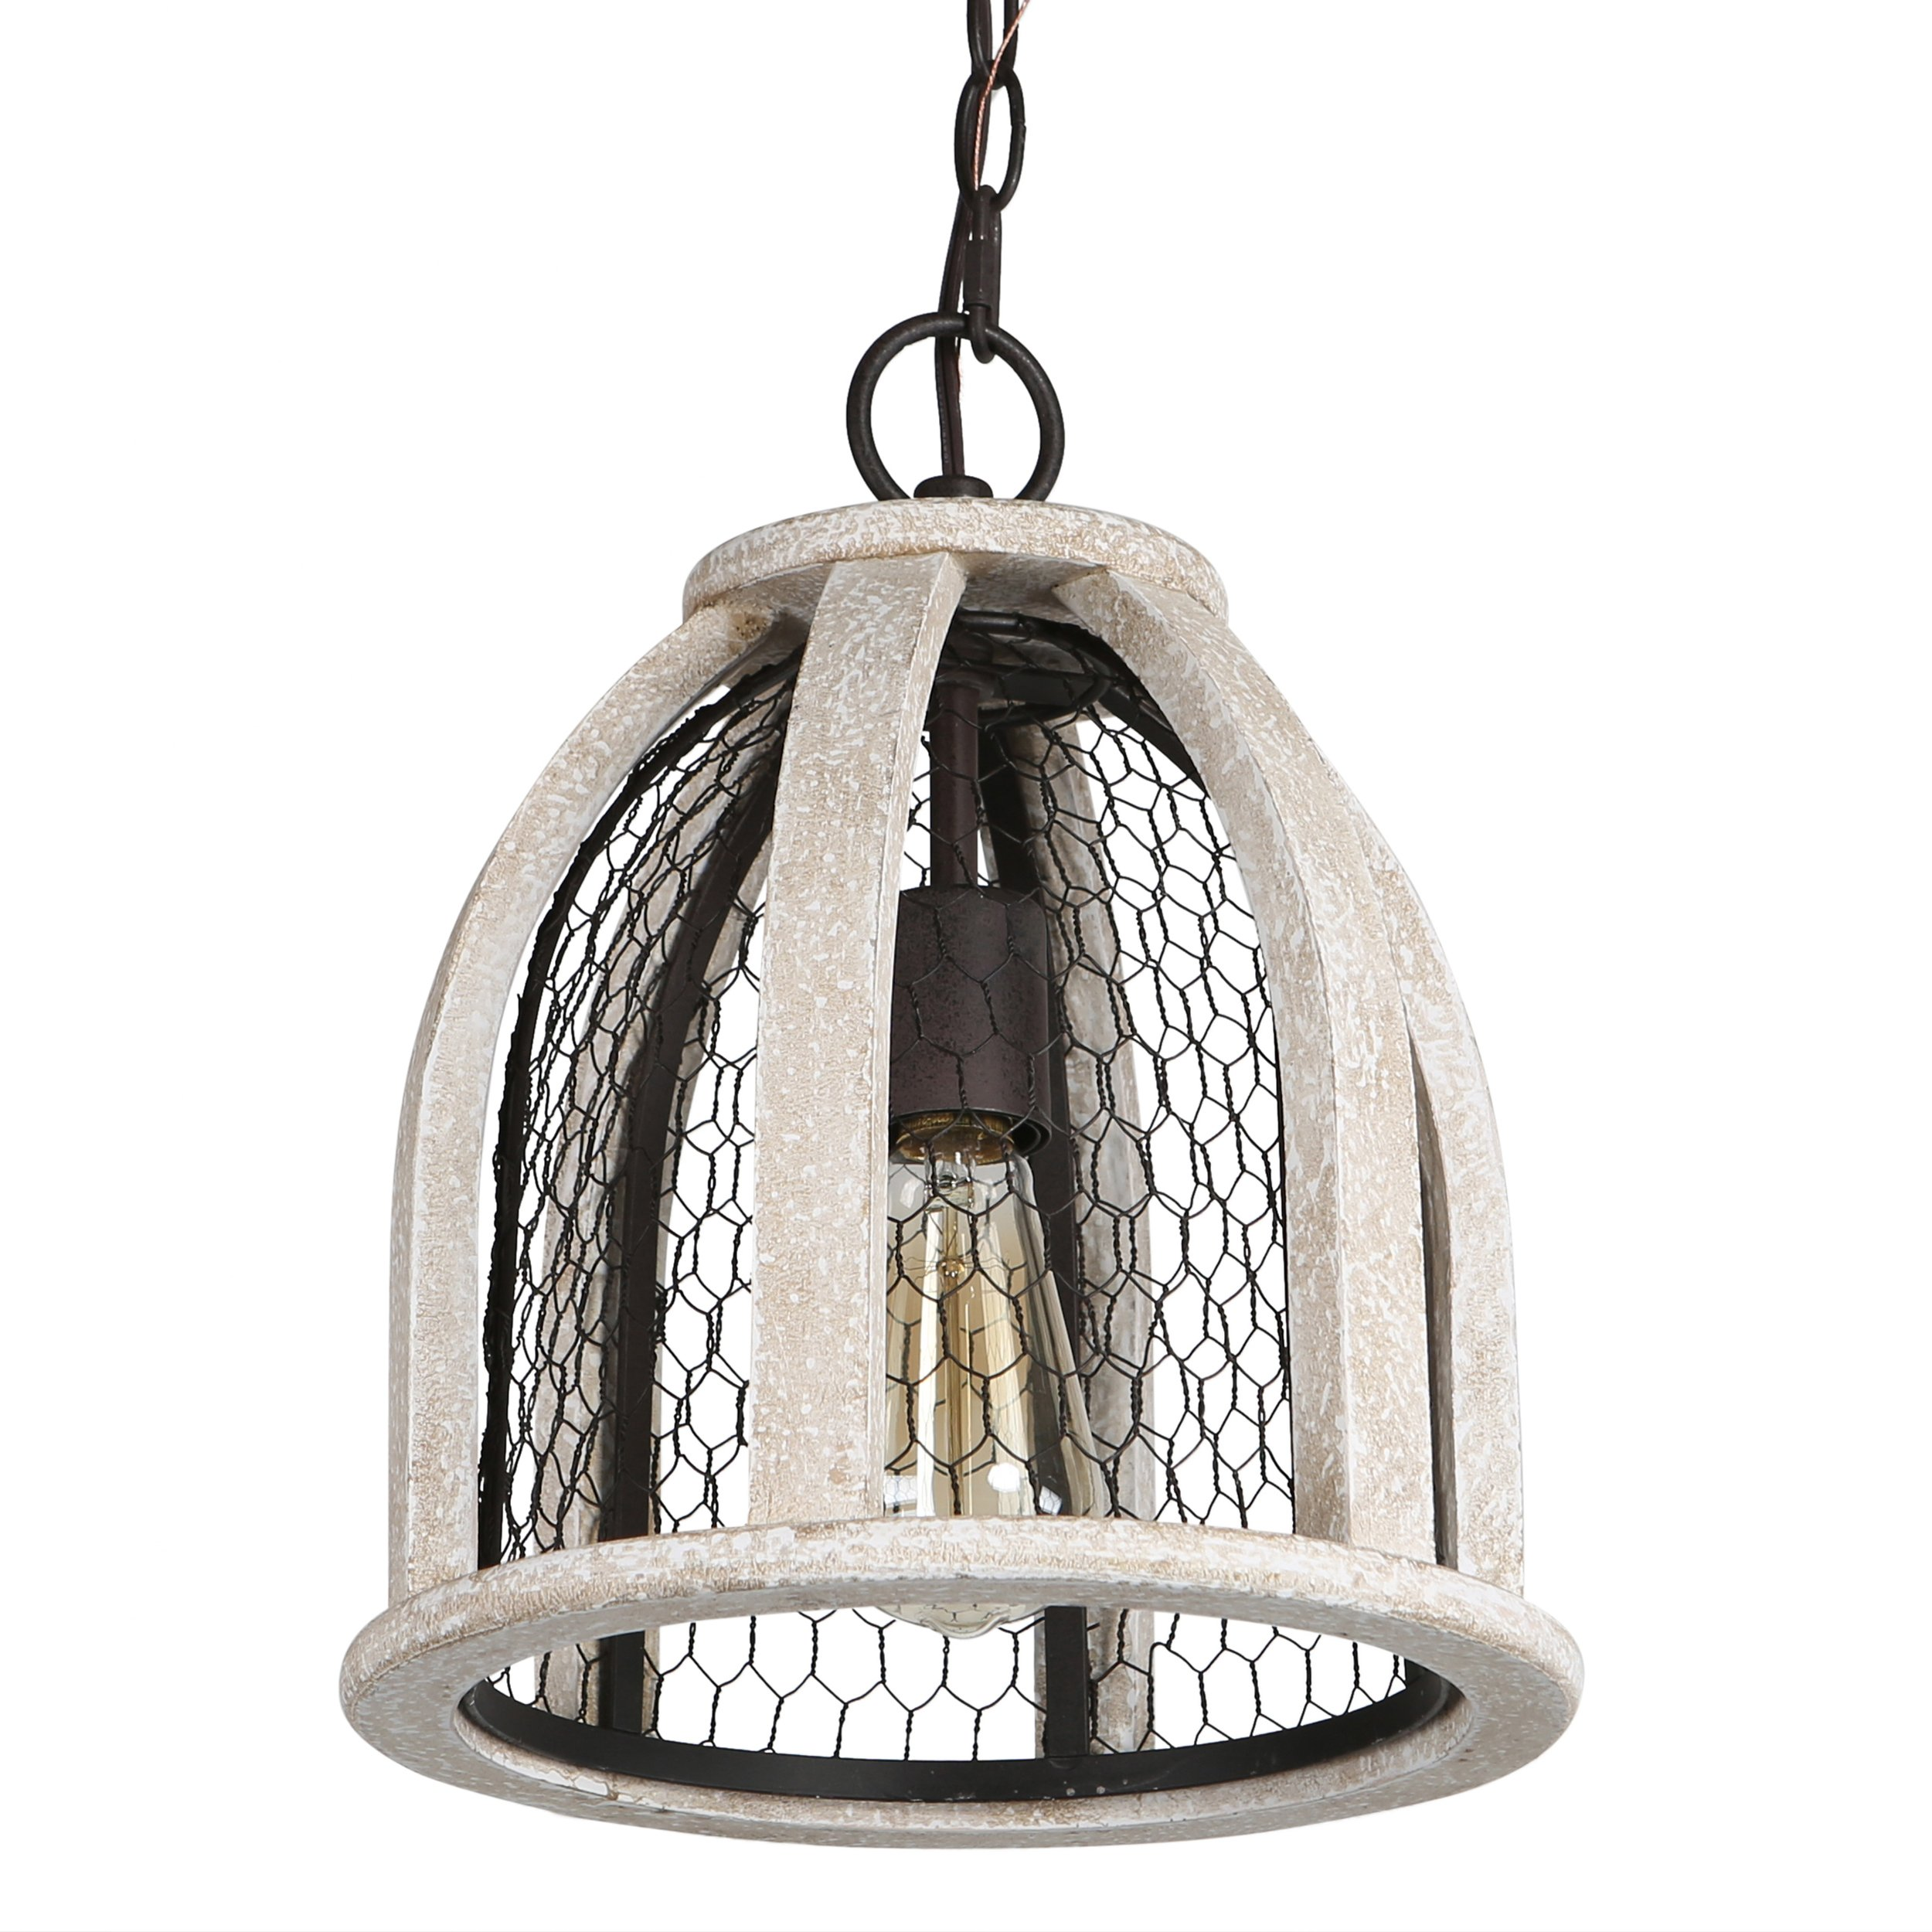 Brinley Home 12 inch Hard Wired Wood Iron Pendant Lamp